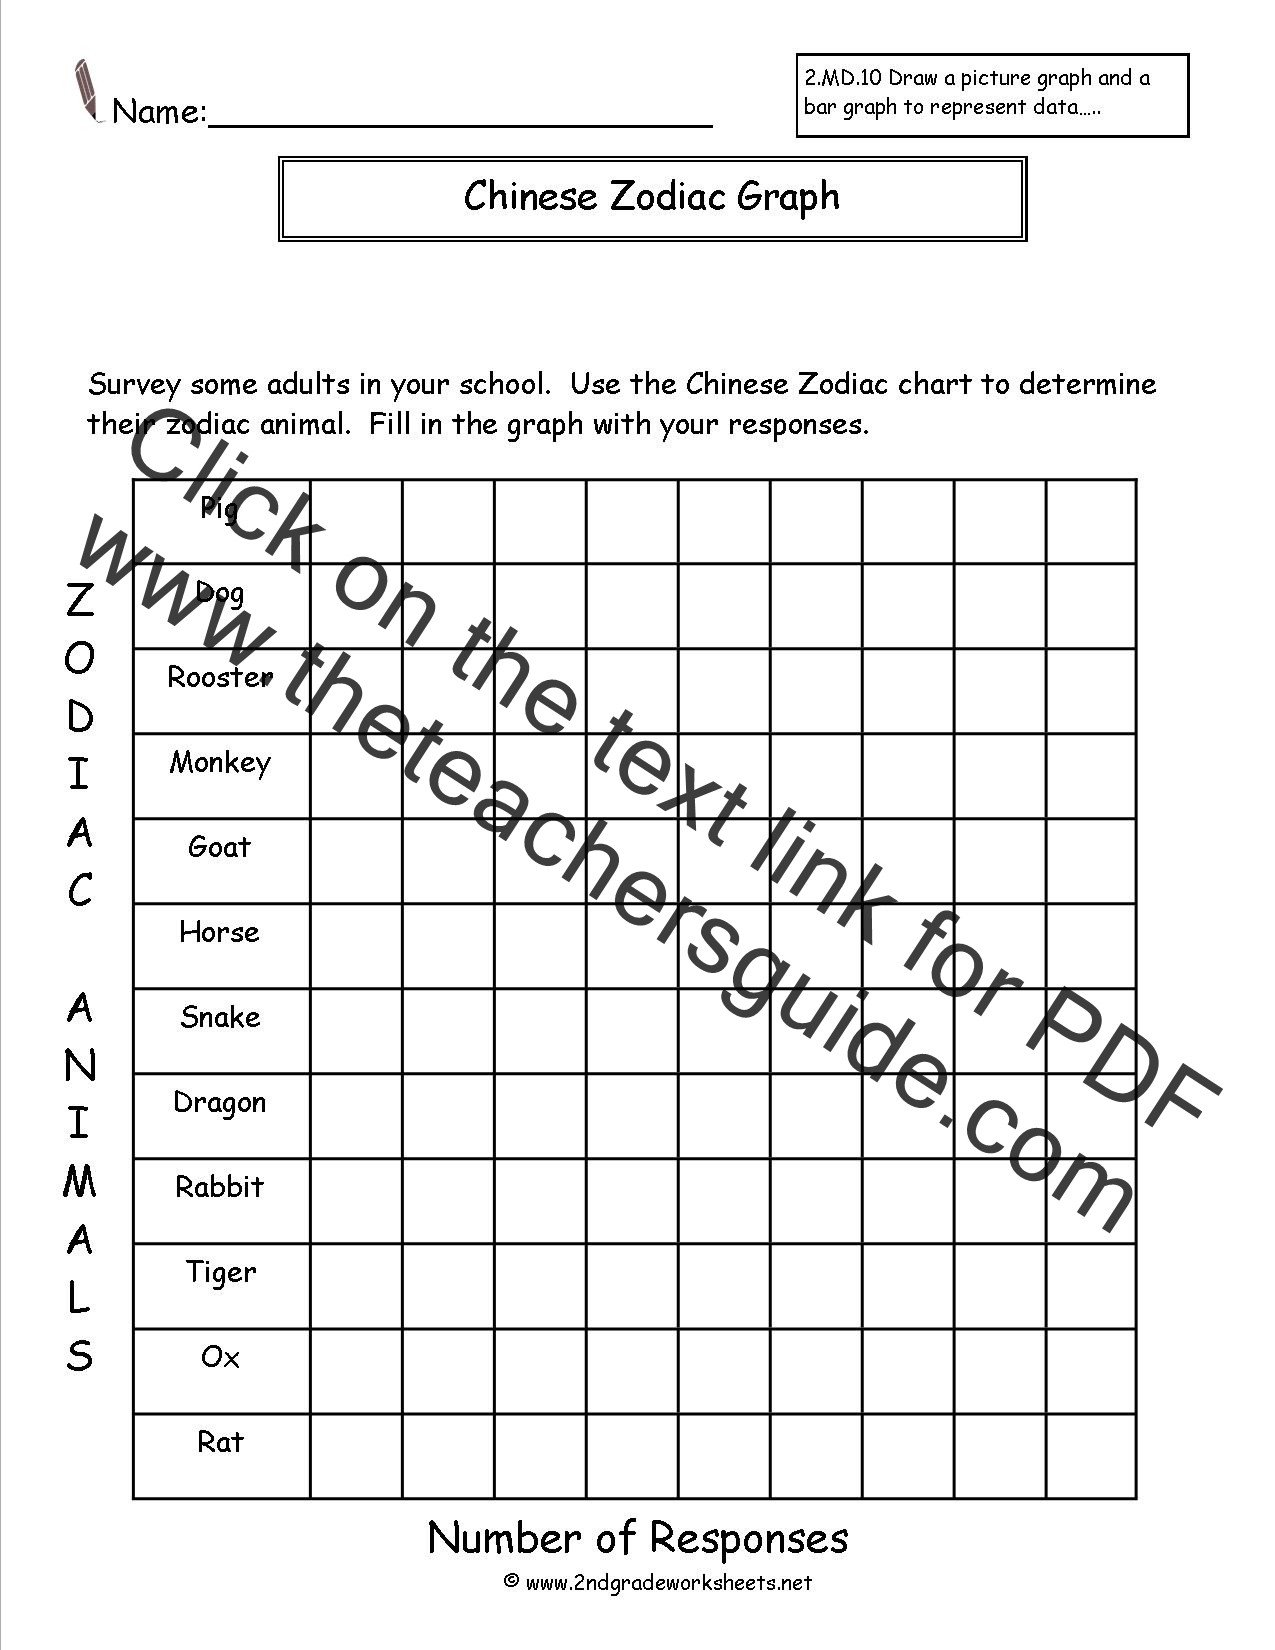 Reading Charts and Graphs Worksheet Free Reading and Creating Bar Graph Worksheets